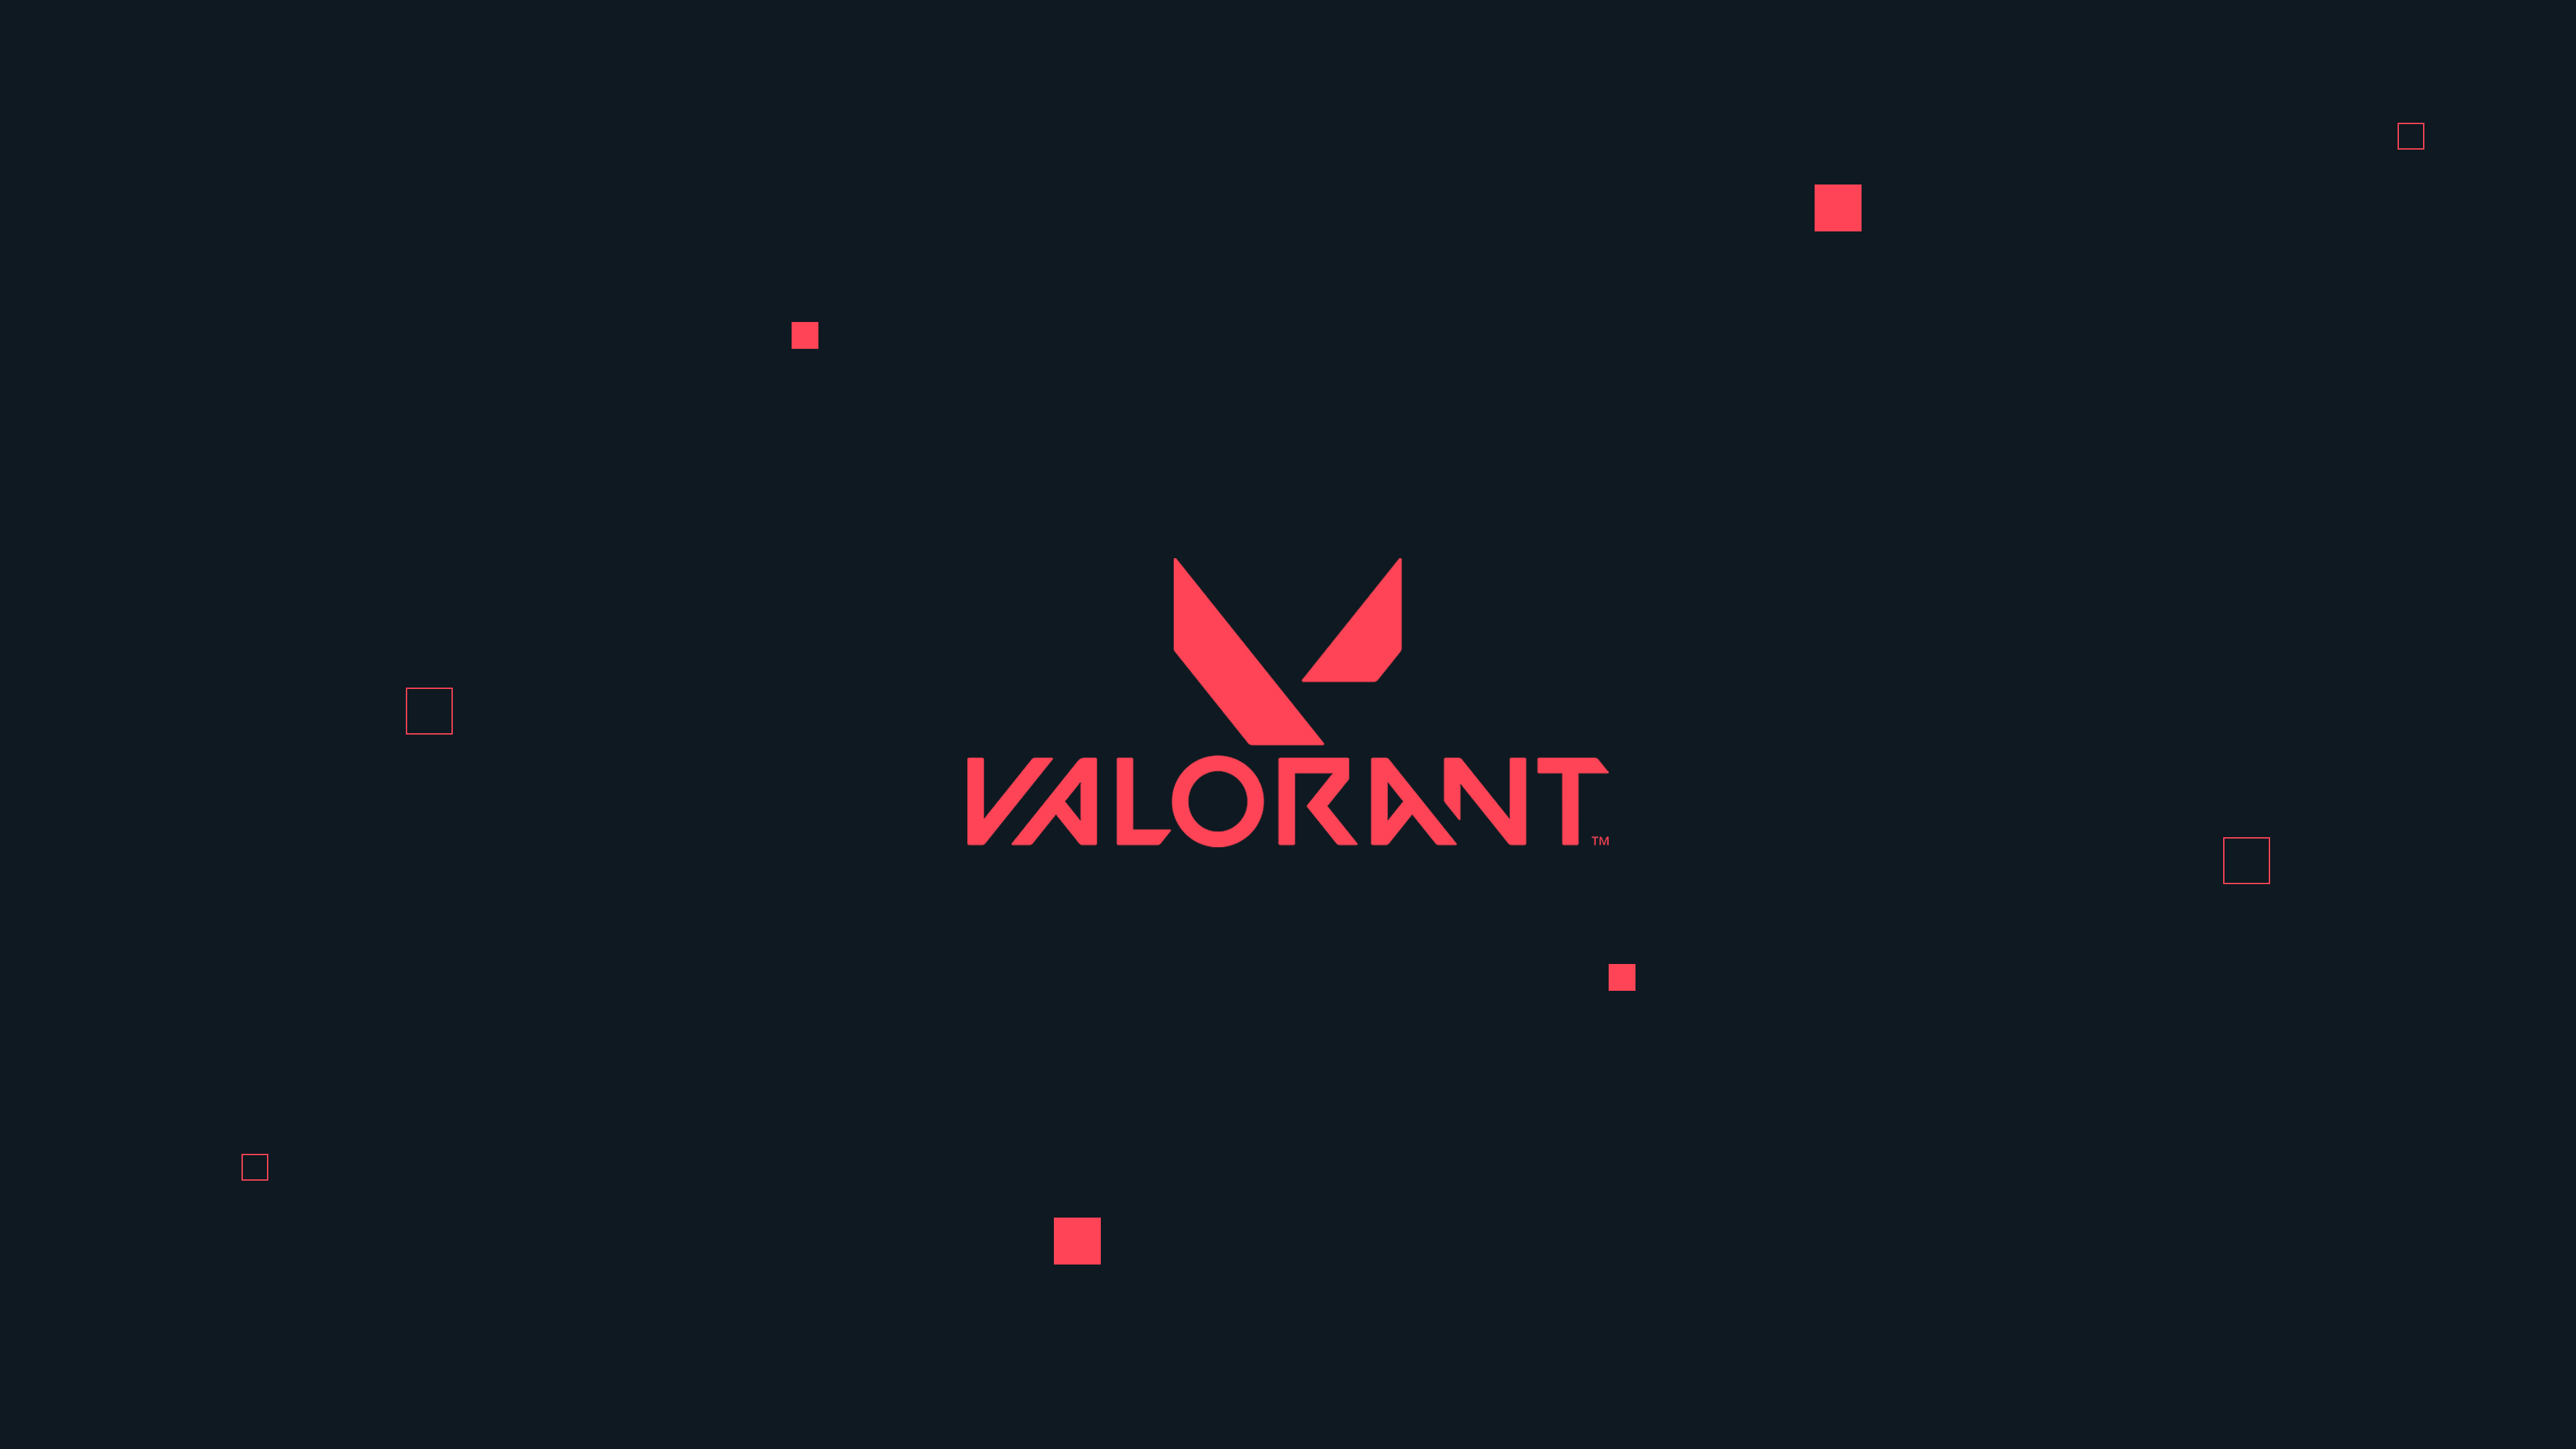 800x1280 Valorant Logo 4k Nexus 7 Samsung Galaxy Tab 10 Note Android Tablets Hd 4k Wallpapers Images Backgrounds Photos And Pictures